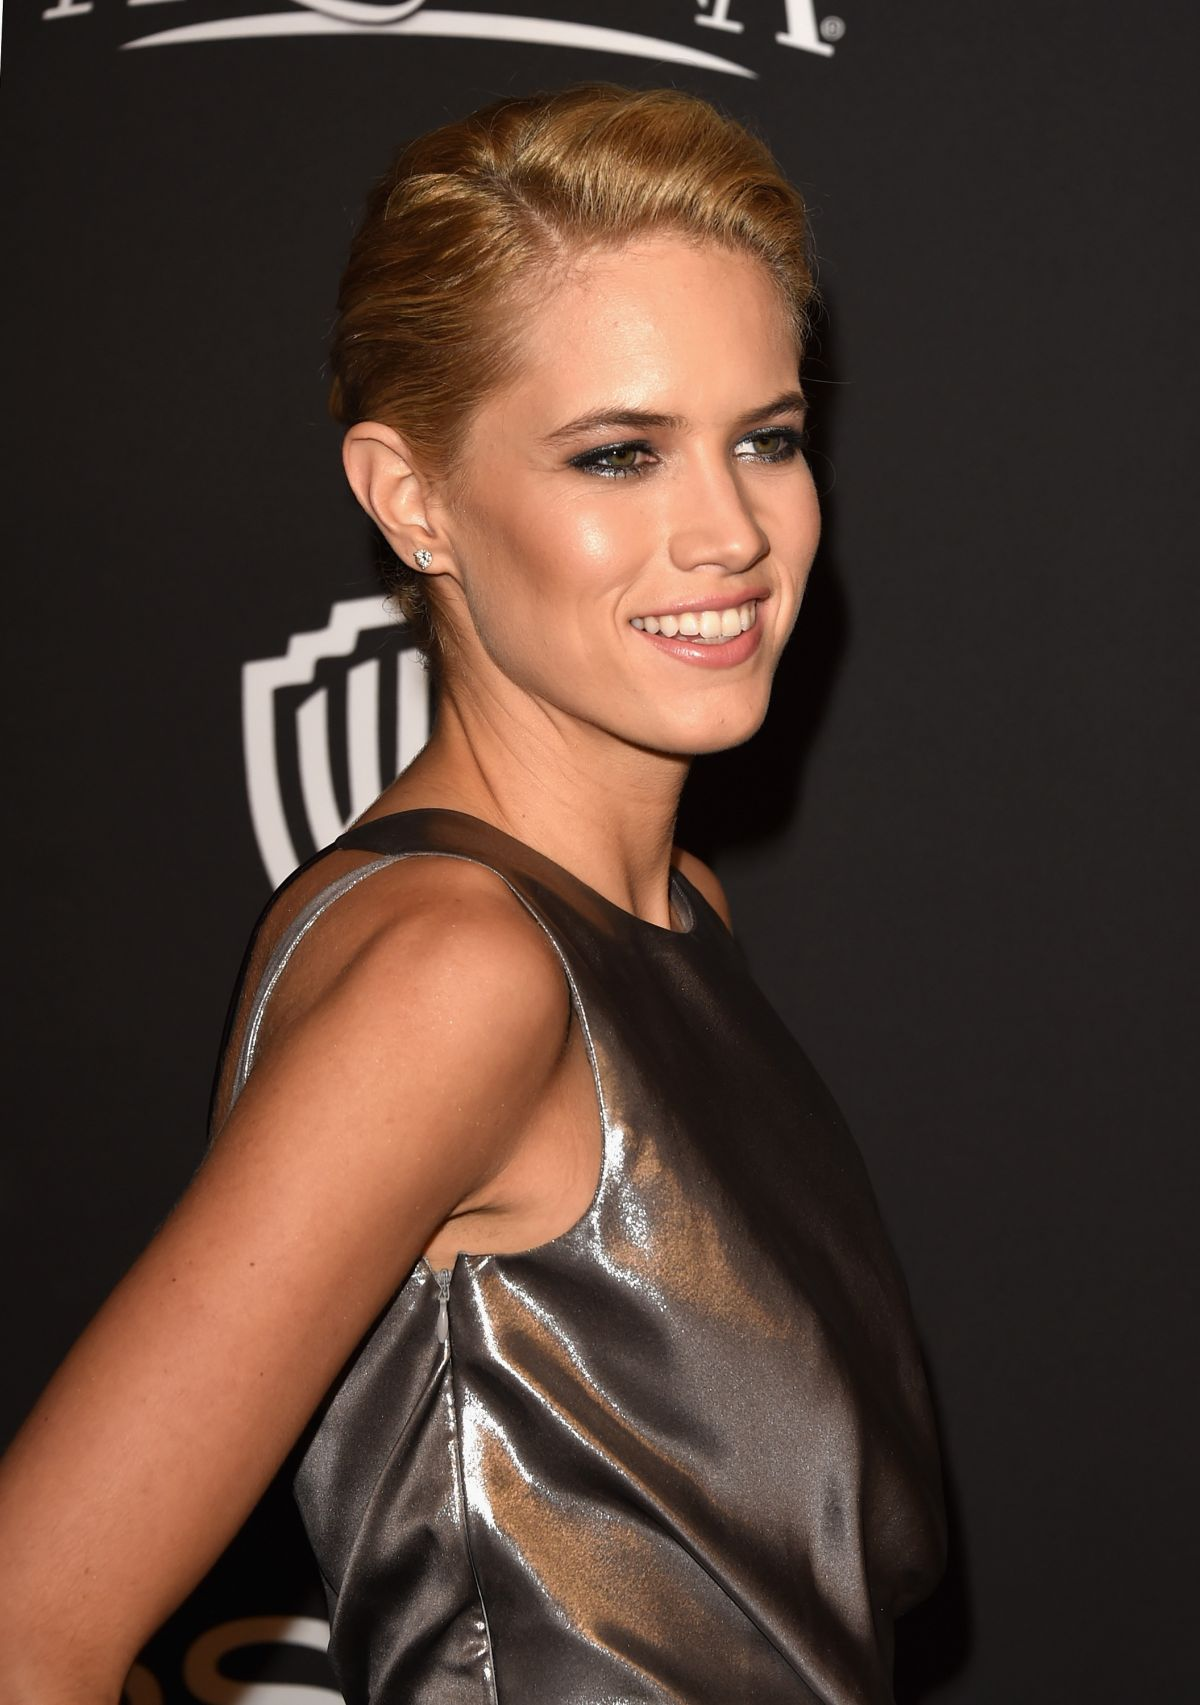 cody horn instagramcody horn instagram, cody horn age, cody horn bf, cody horn interview, cody horn kevin love, cody horn rescue me, cody horn, cody horn the office, cody horn boyfriend, cody horn imdb, cody horn twitter, cody horn end of watch, cody horn facebook, cody horn magic mike xxl, cody horn movies, cody horn magic mike, cody horn dating, cody horn net worth, cody horn bikini, cody horn tattoo